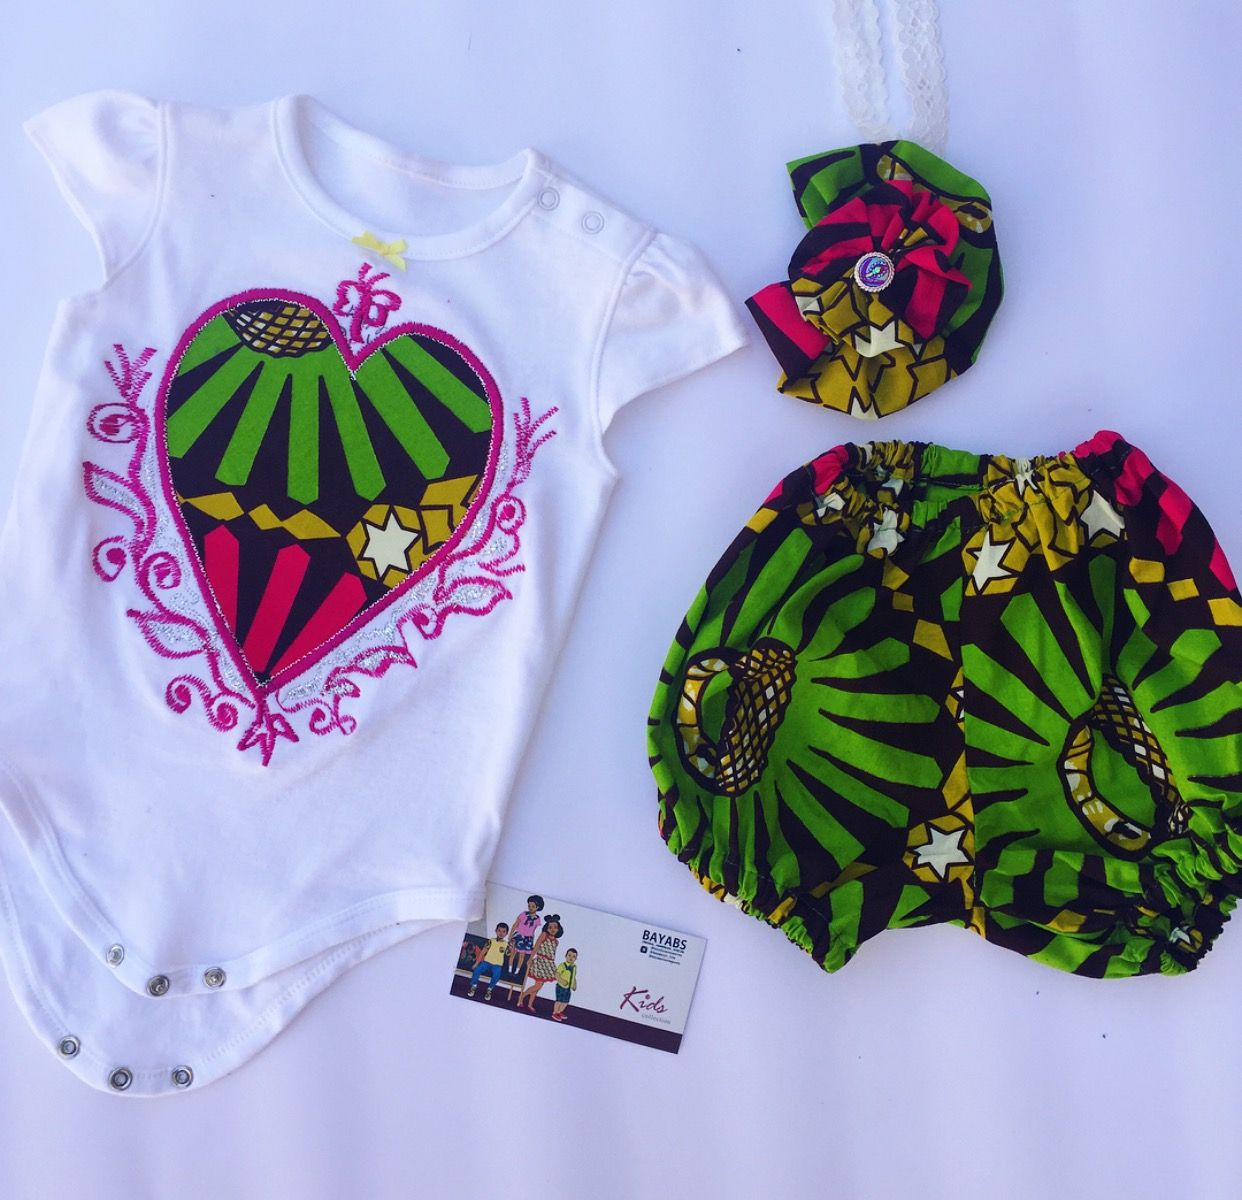 African Fashion for Babies. Onesie set with embroidery made with African wax Print. African print clothing for babies made by BAYABS. Find more baby style on Facebook: BAYABS and @bayabsgh_kids on Instagram Wax prints  African Print  Diaper Bag  African Textile  baby style  onesie